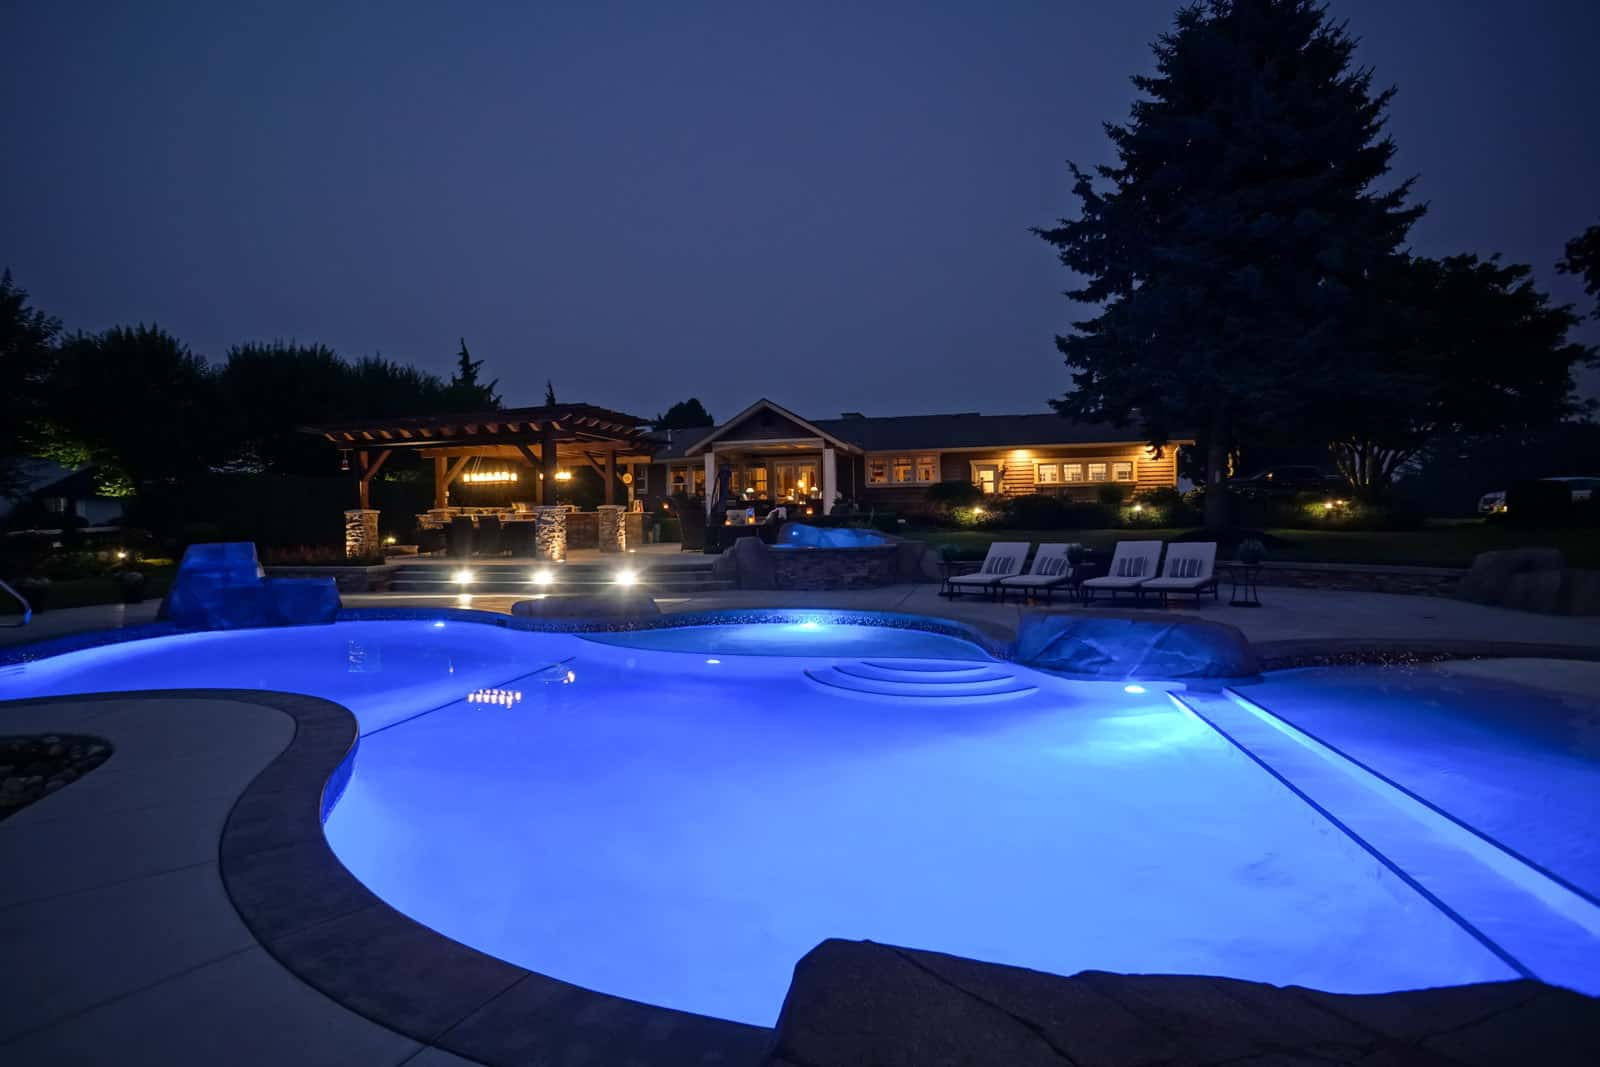 home swimming pools at night. What We Build Home Swimming Pools At Night